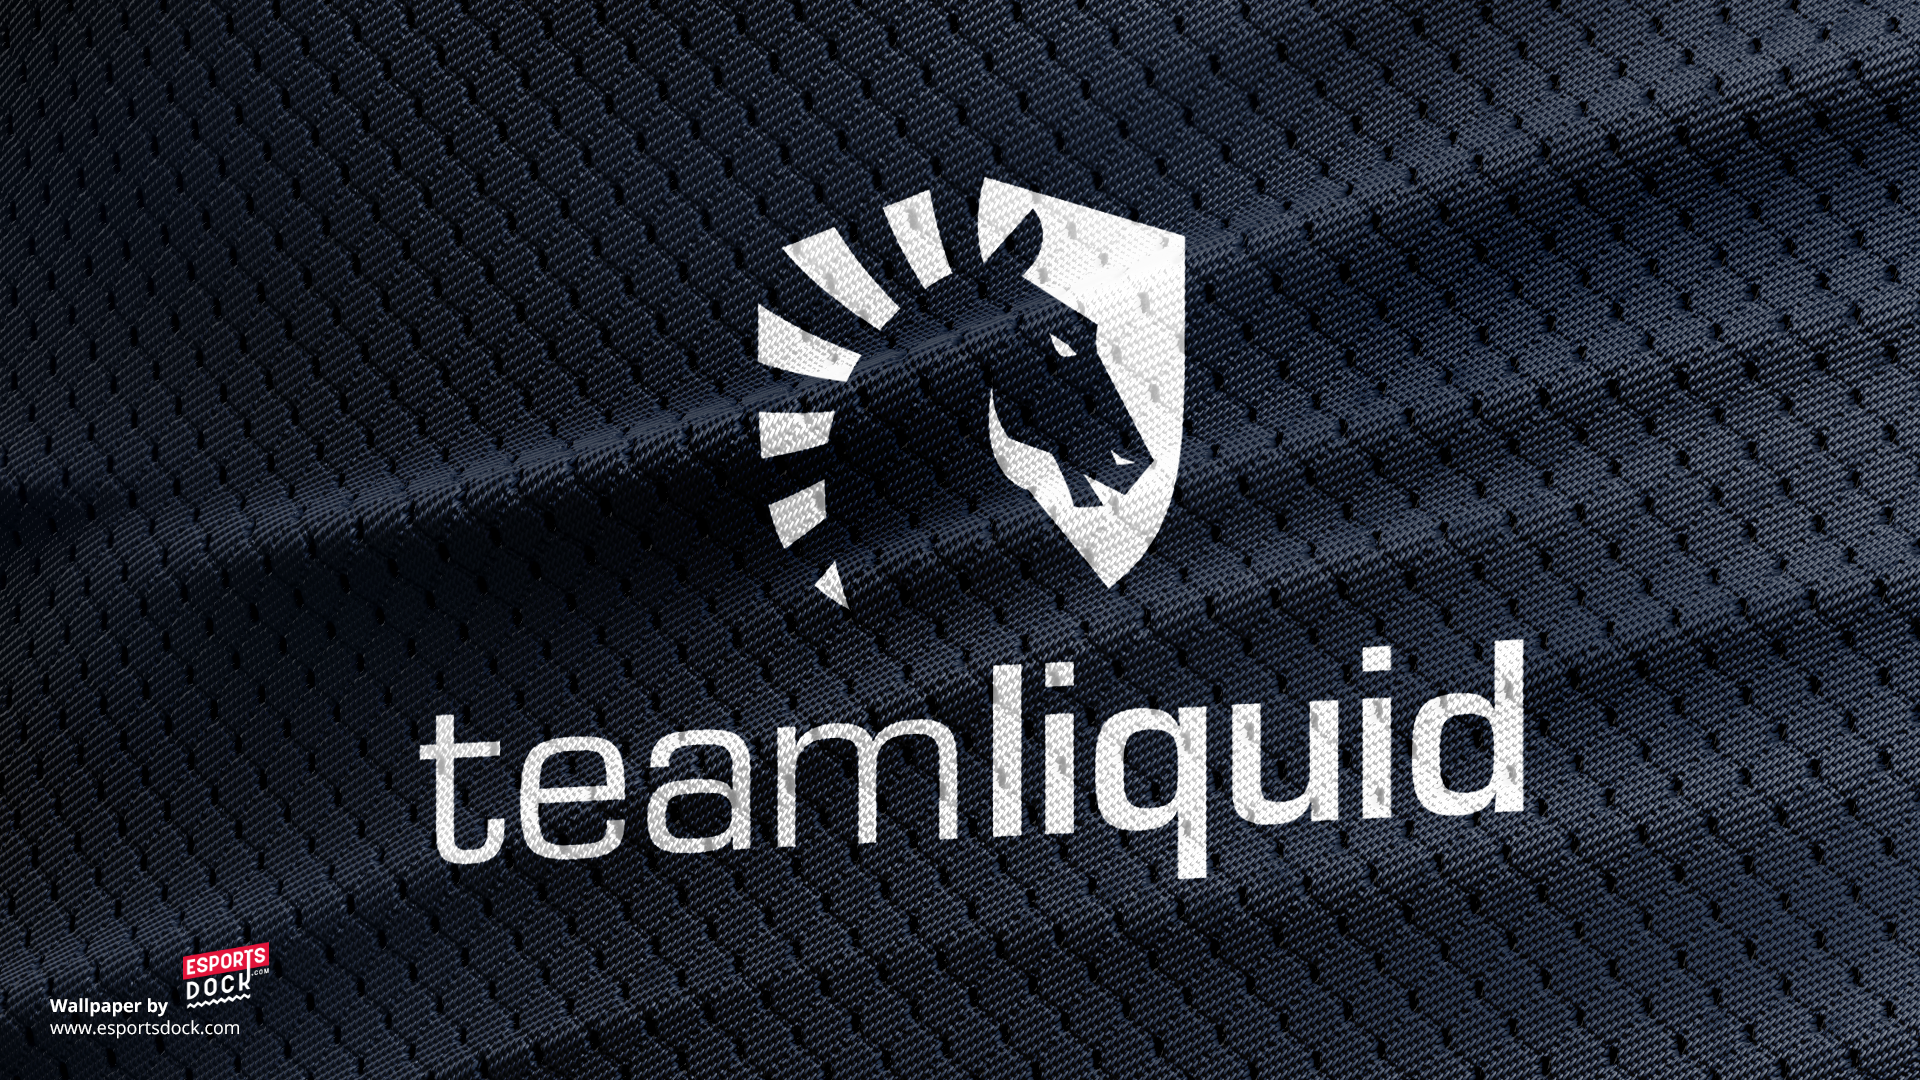 Know the next changes of team liquid